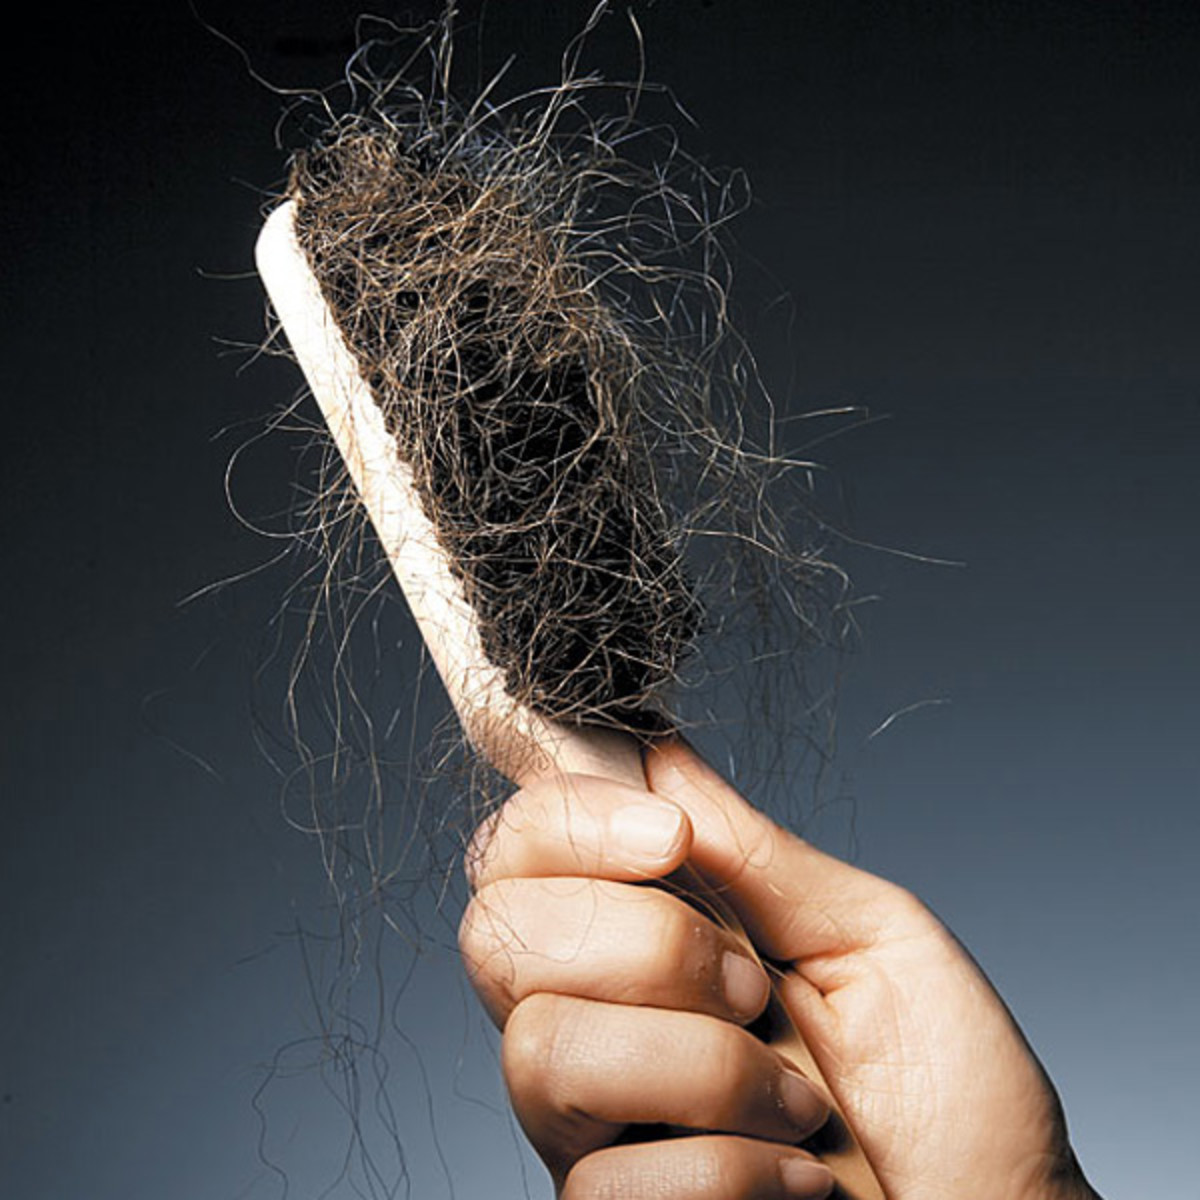 Everytime I Comb My Hair Falls Out